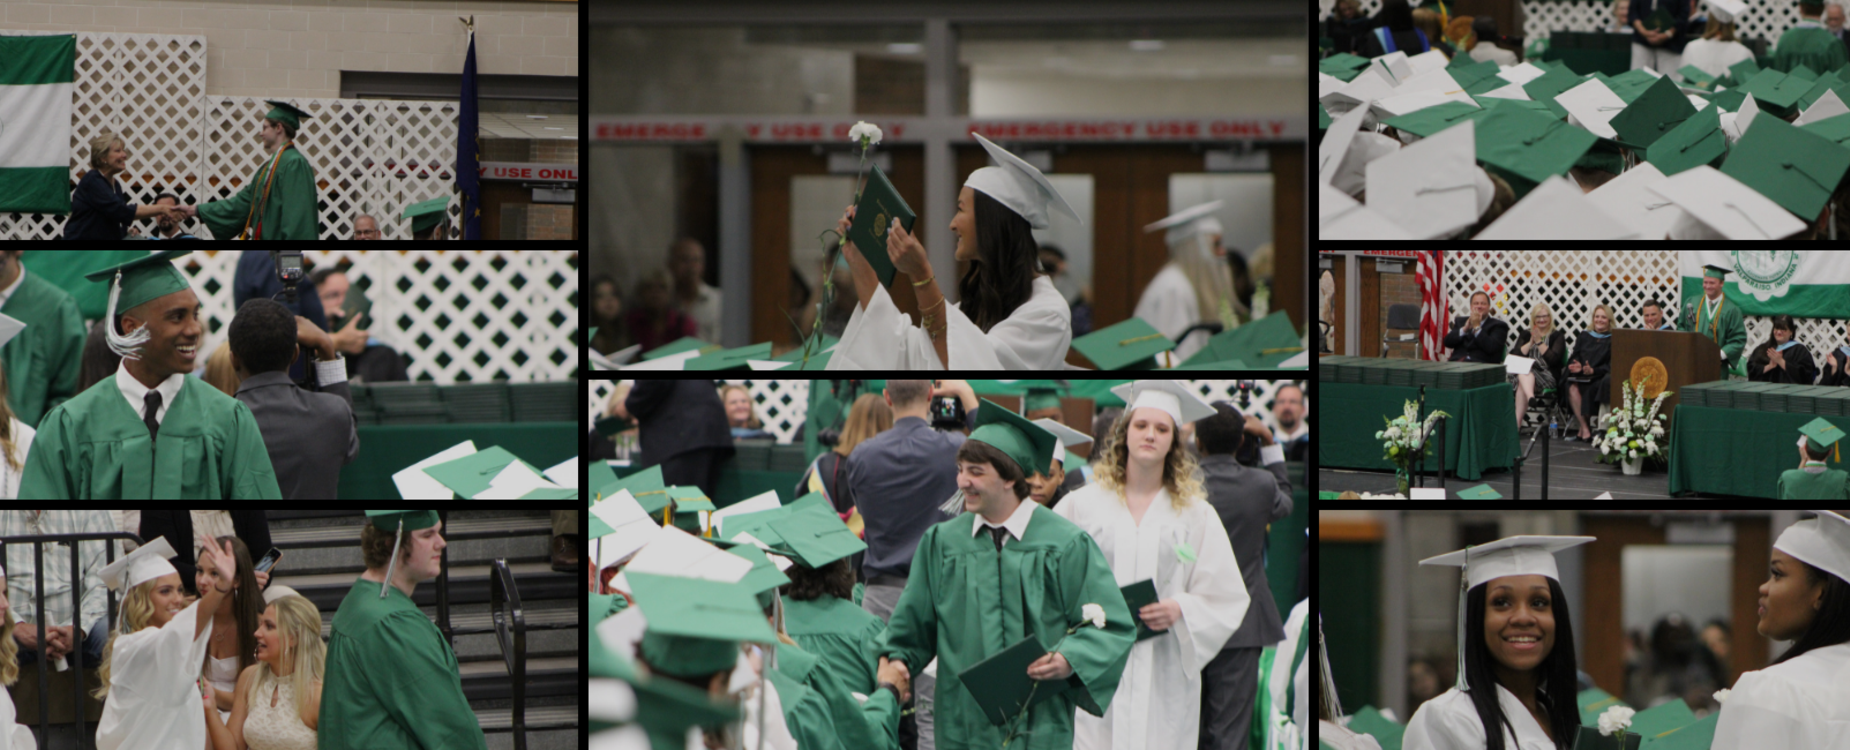 Class of 2019 Commencement Ceremony photos